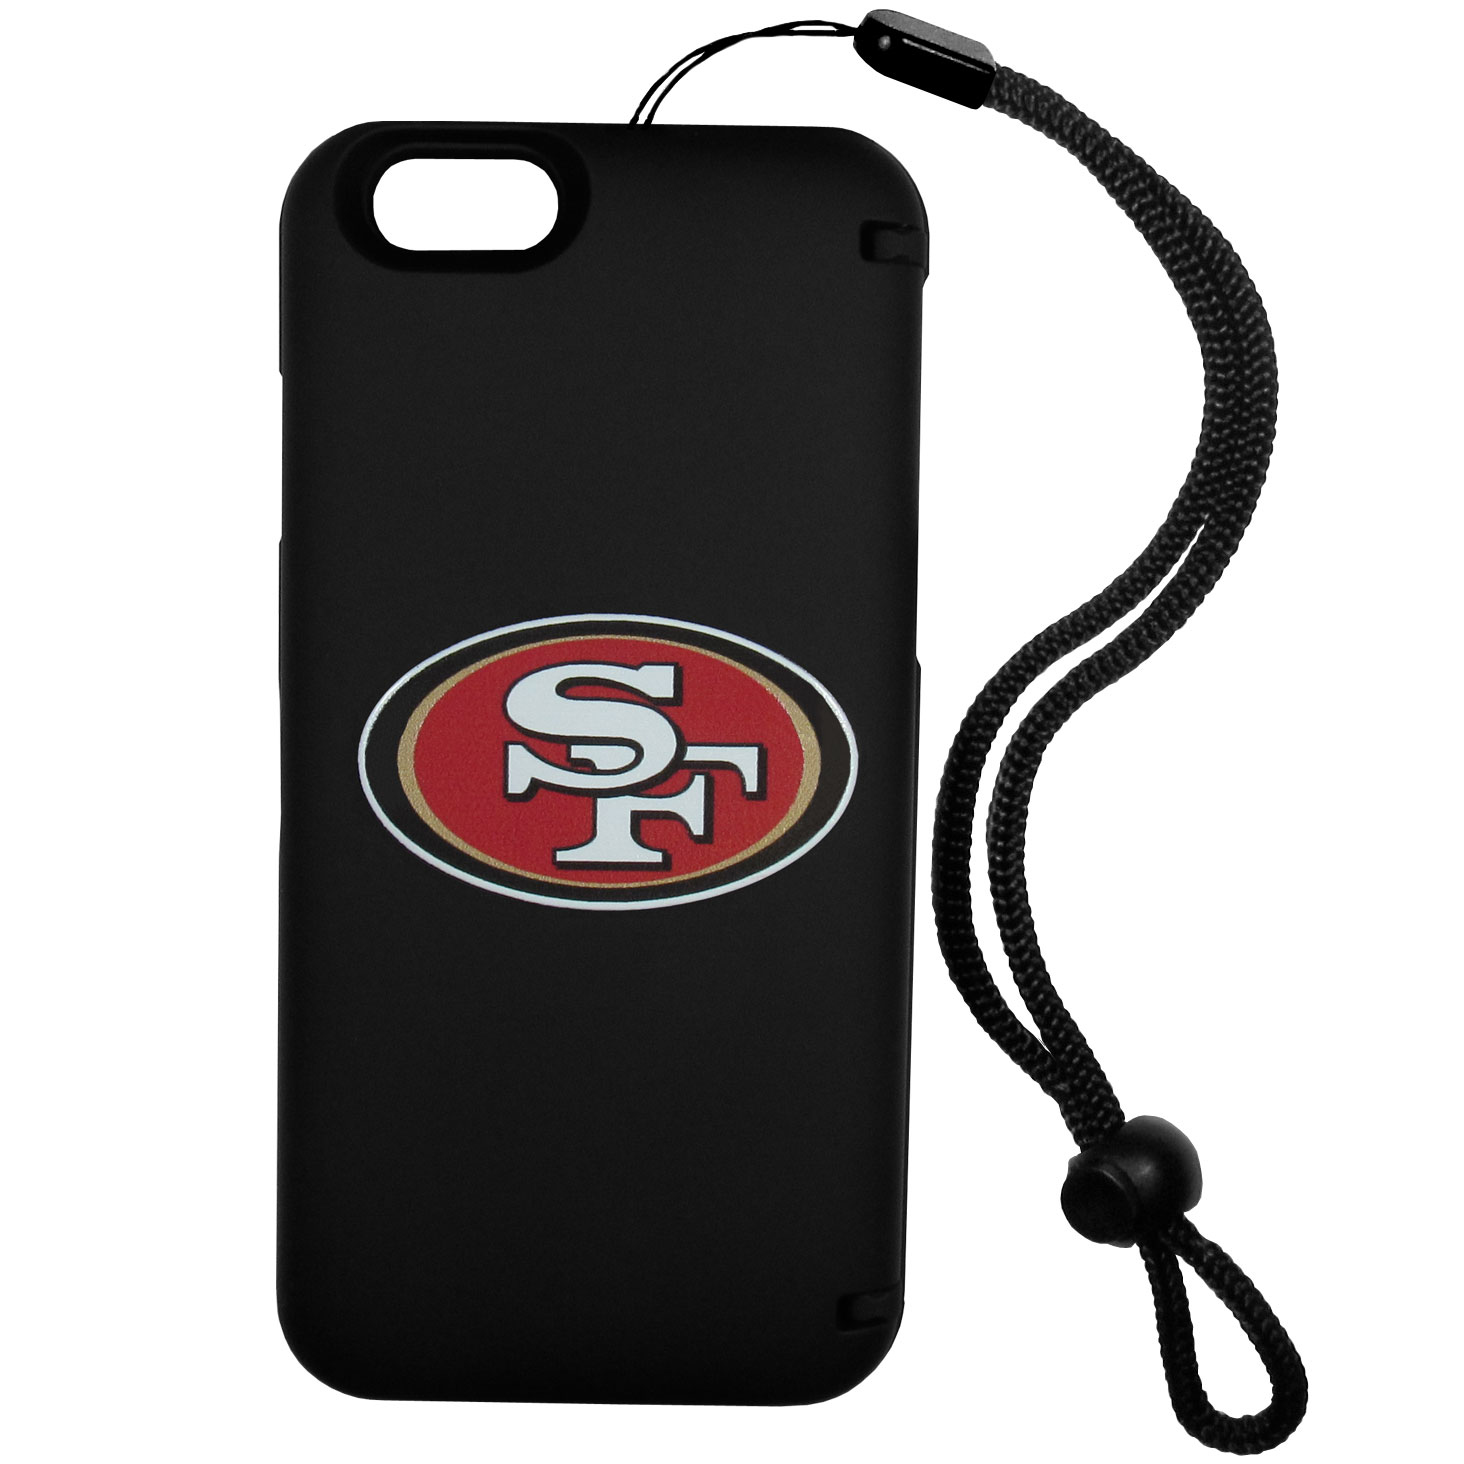 San Francisco 49ers iPhone 6 Plus Everything Case - This case really does have everything but the kitchen sink! The hidden compartment lets you keep your cards, money and tickets to the big game safe and secure and has a compact mirror so you can make sure your game face is ready to go. It also comes with a kickstand to make chatting and watching videos a breeze. The wrist strap allows you to travel with ease with your everything case. If that's not enough, it also comes with the San Francisco 49ers logo printed in expert detail on the front.